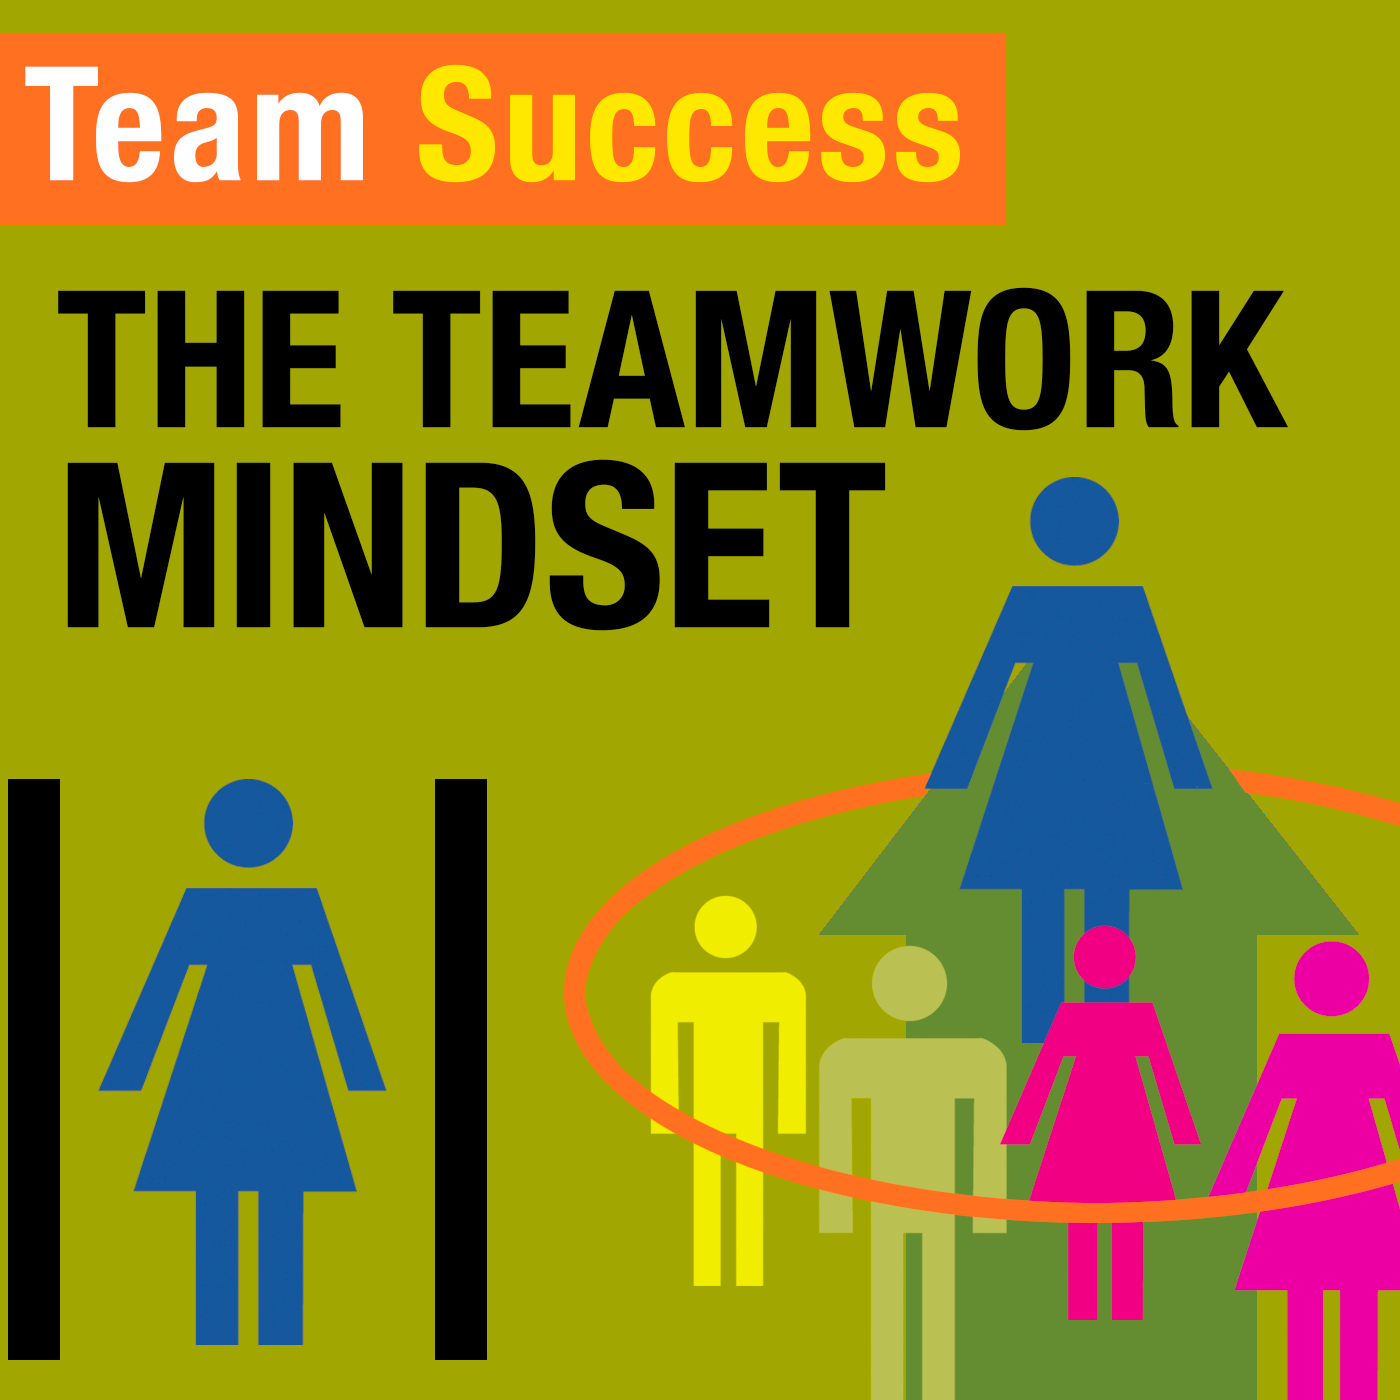 The Teamwork Mindset